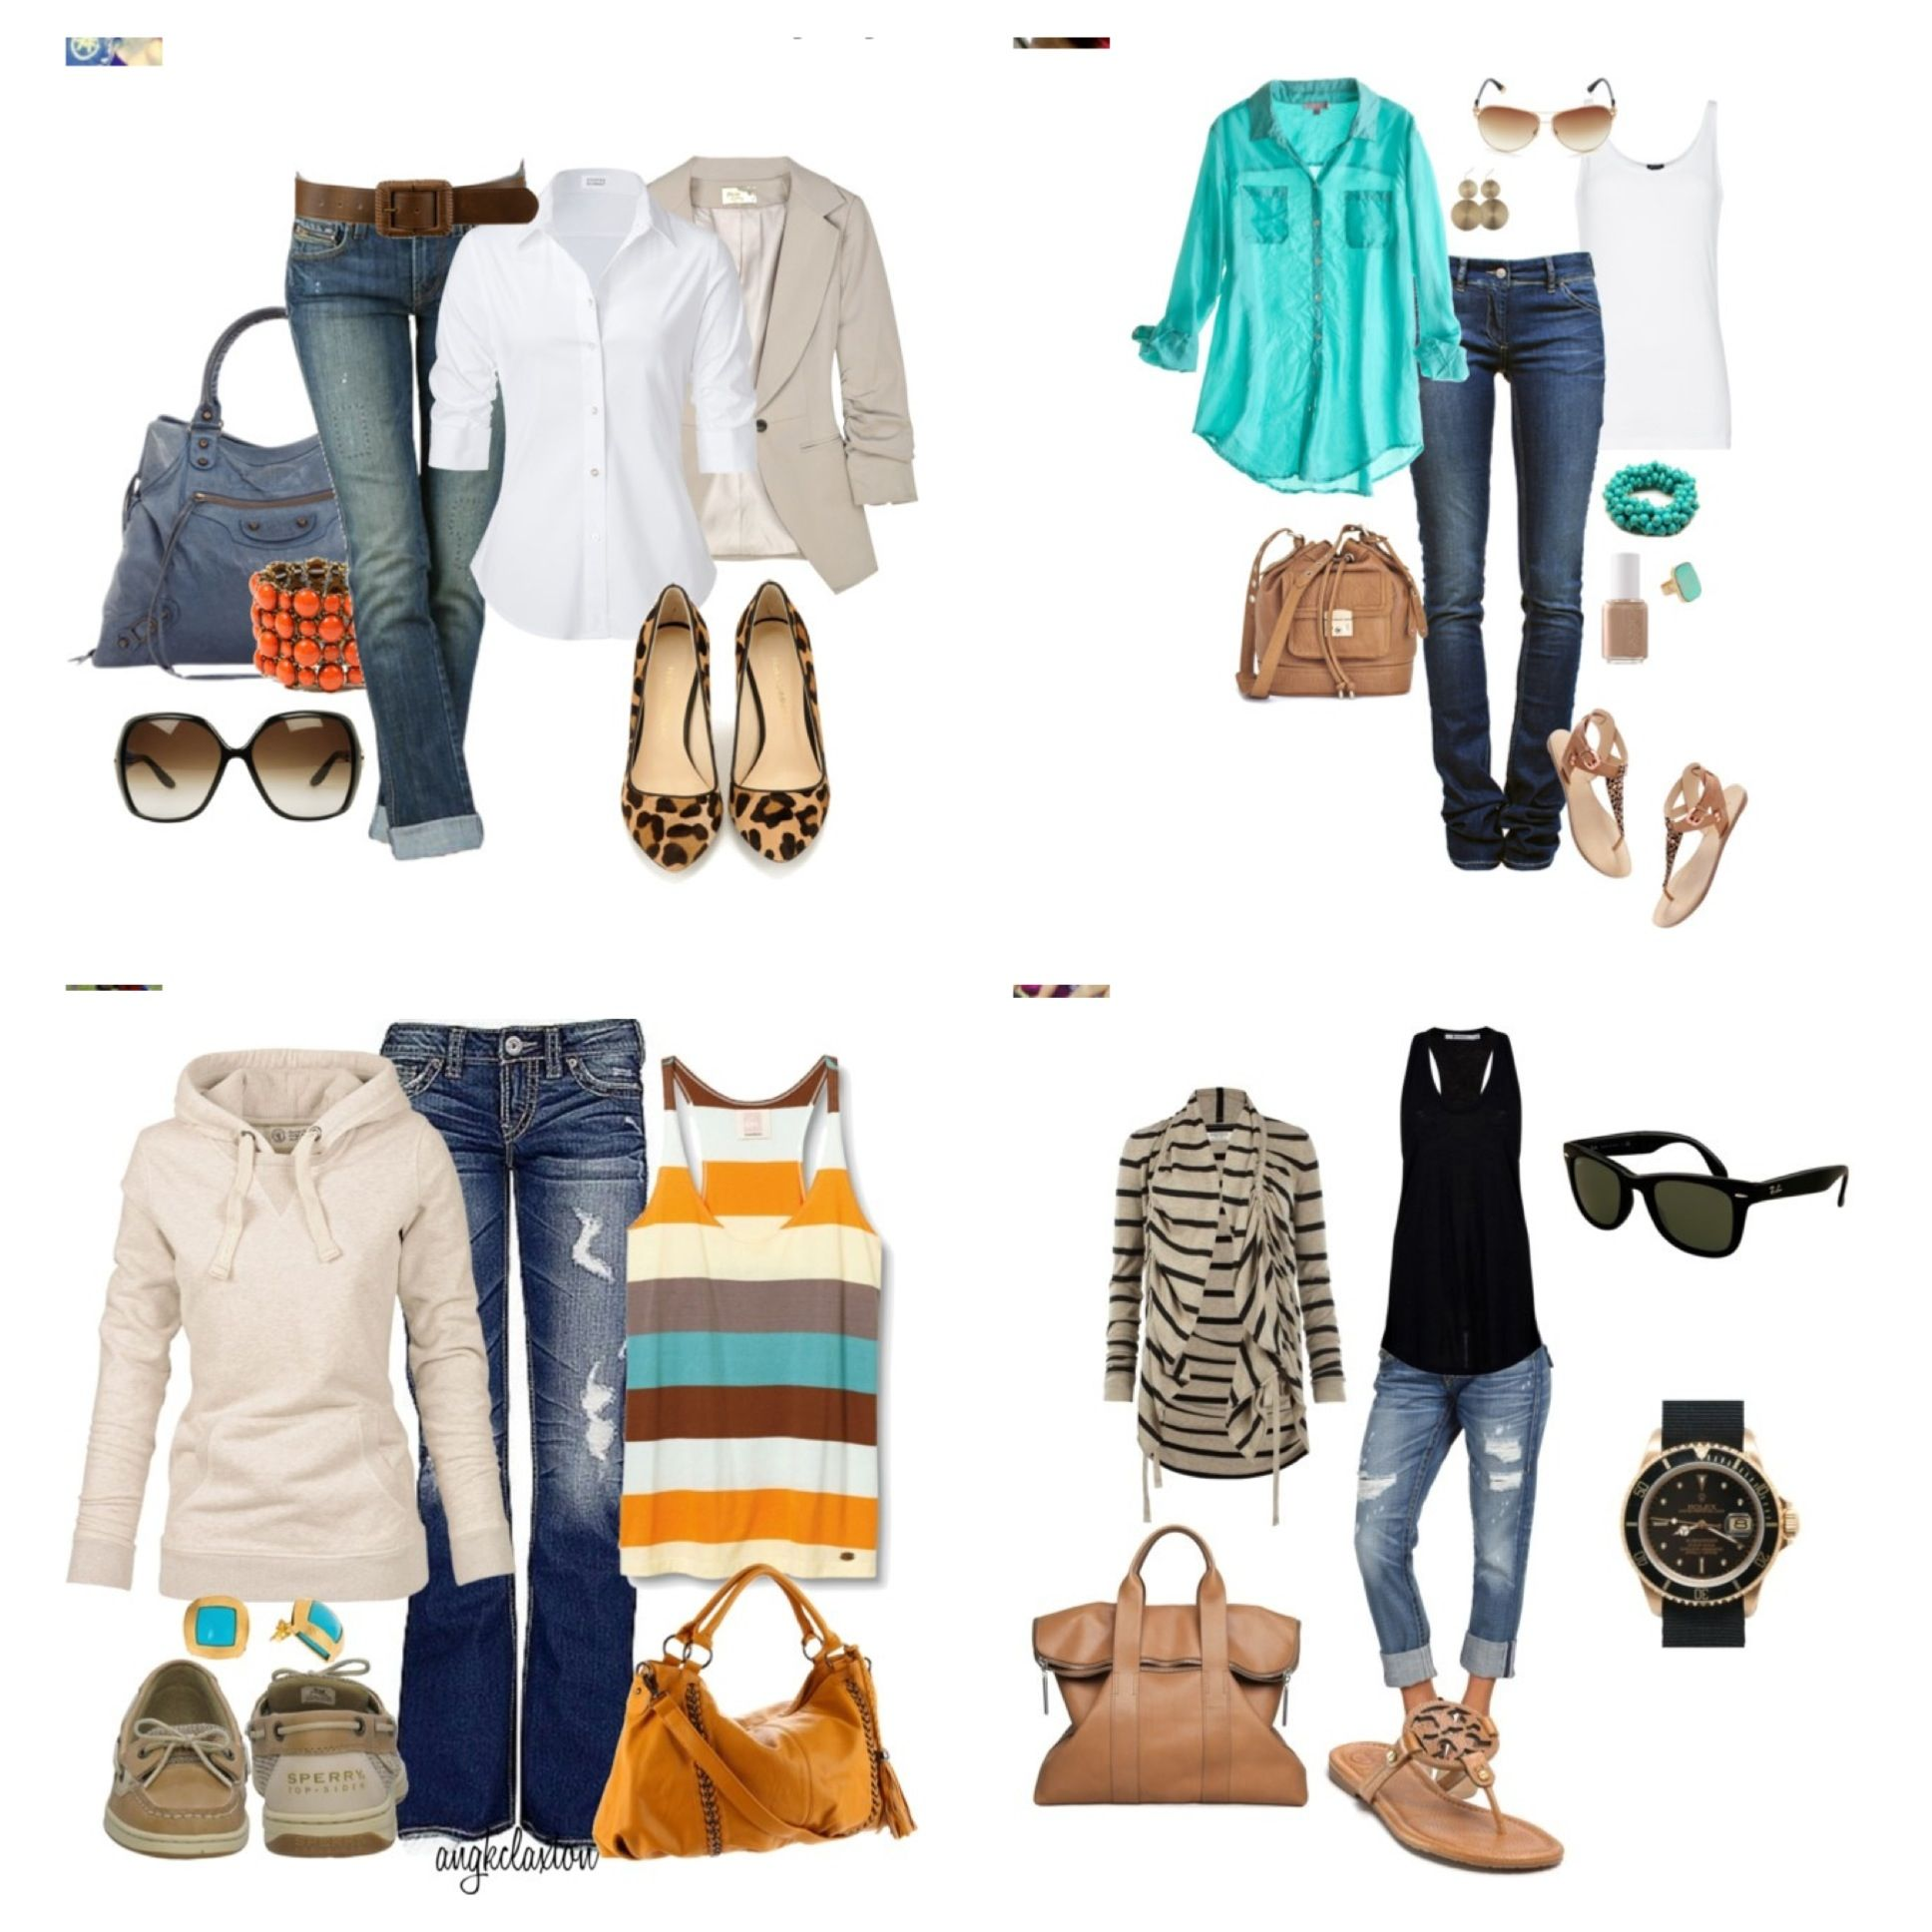 Back to school outfits that fit your schools dress code!! | Fashion | Pinterest | School dress ...